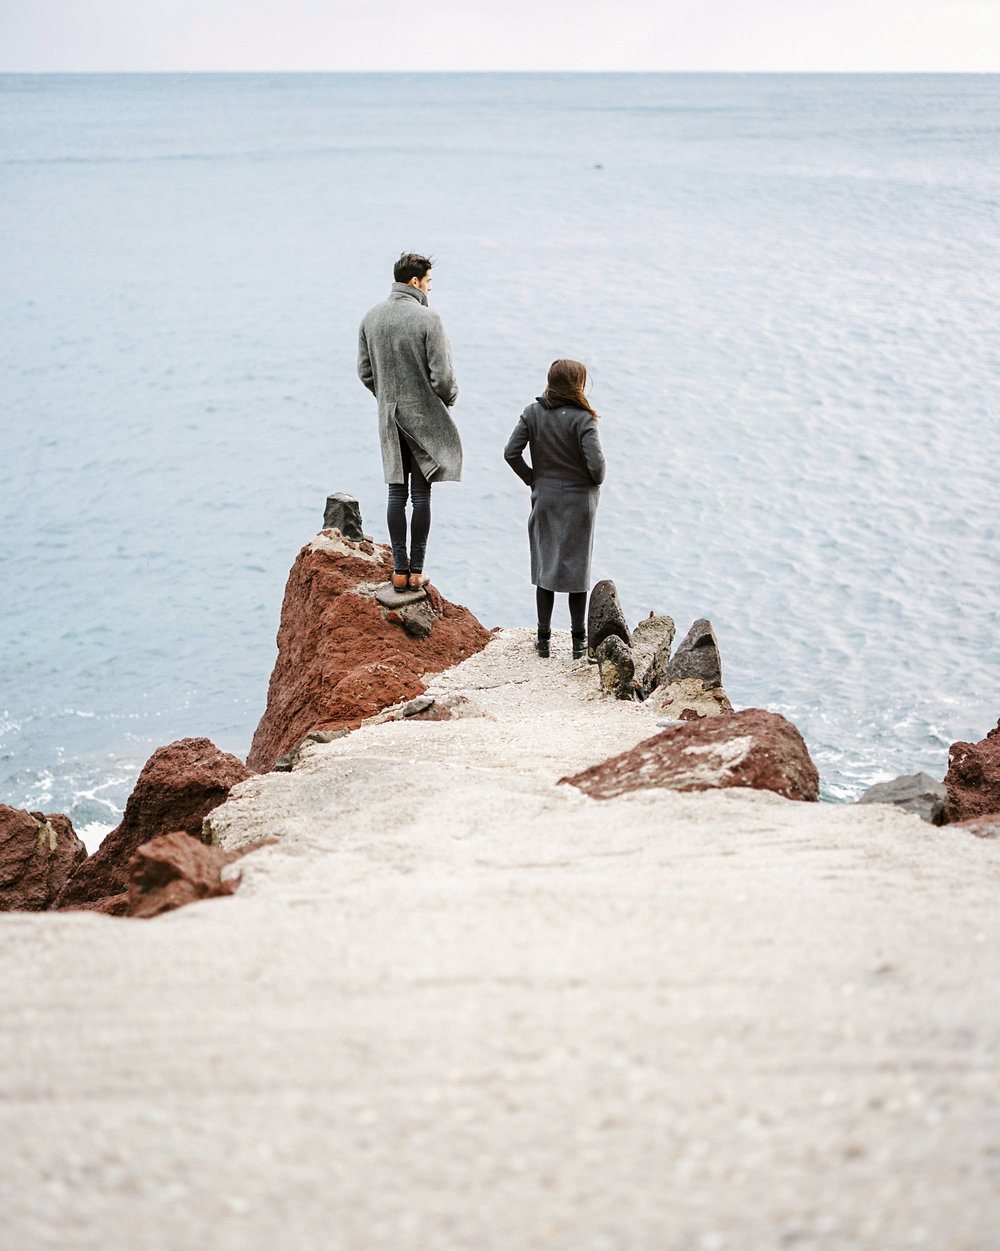 celinehamelin-photographe-couple-argentique-loversession-grece-santorin-argentique-filmphotography-greece2.jpg